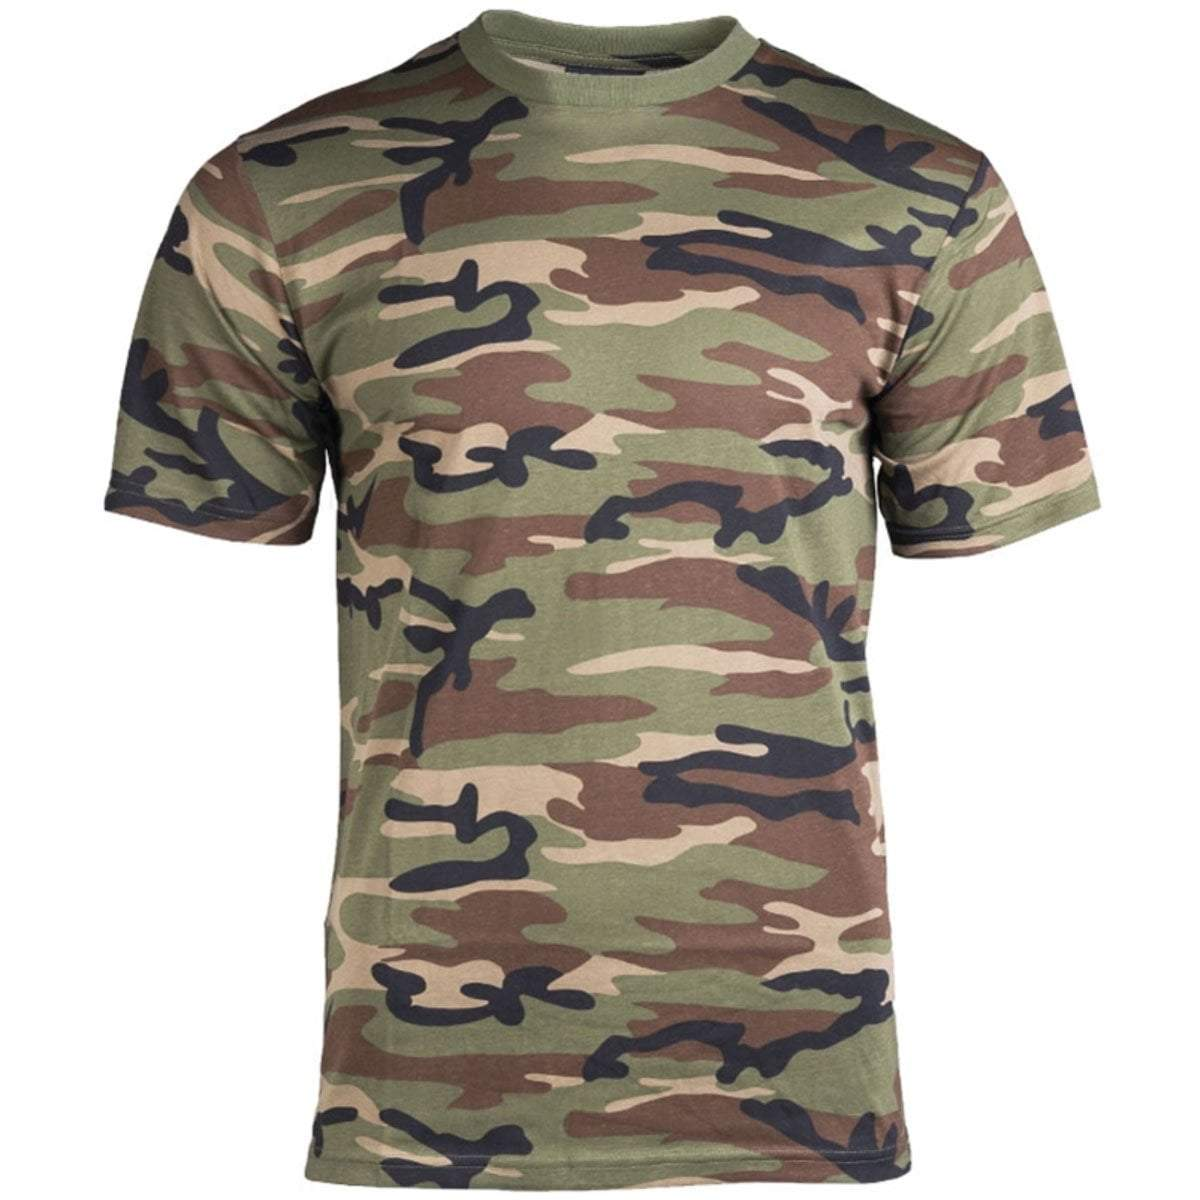 Mil-Tec Short Sleeve T-Shirt US Woodland Camo | UKMCPro